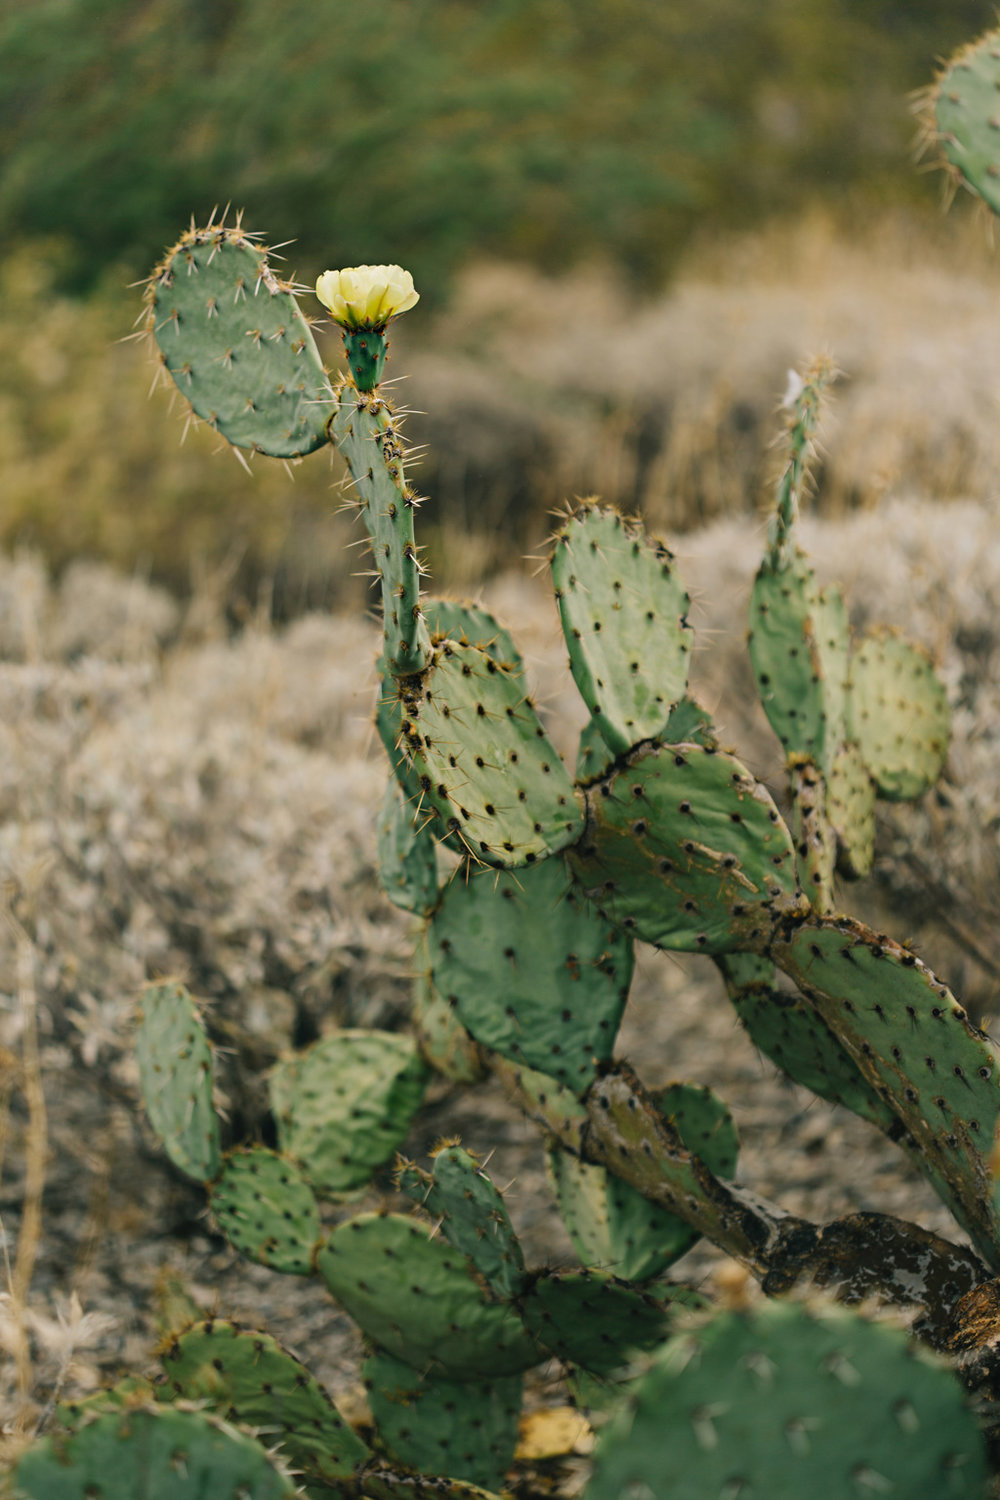 CindyGiovagnoli_Saguaro_National_Park_Arizona_desert_cactus_bloom_flowers-007.jpg